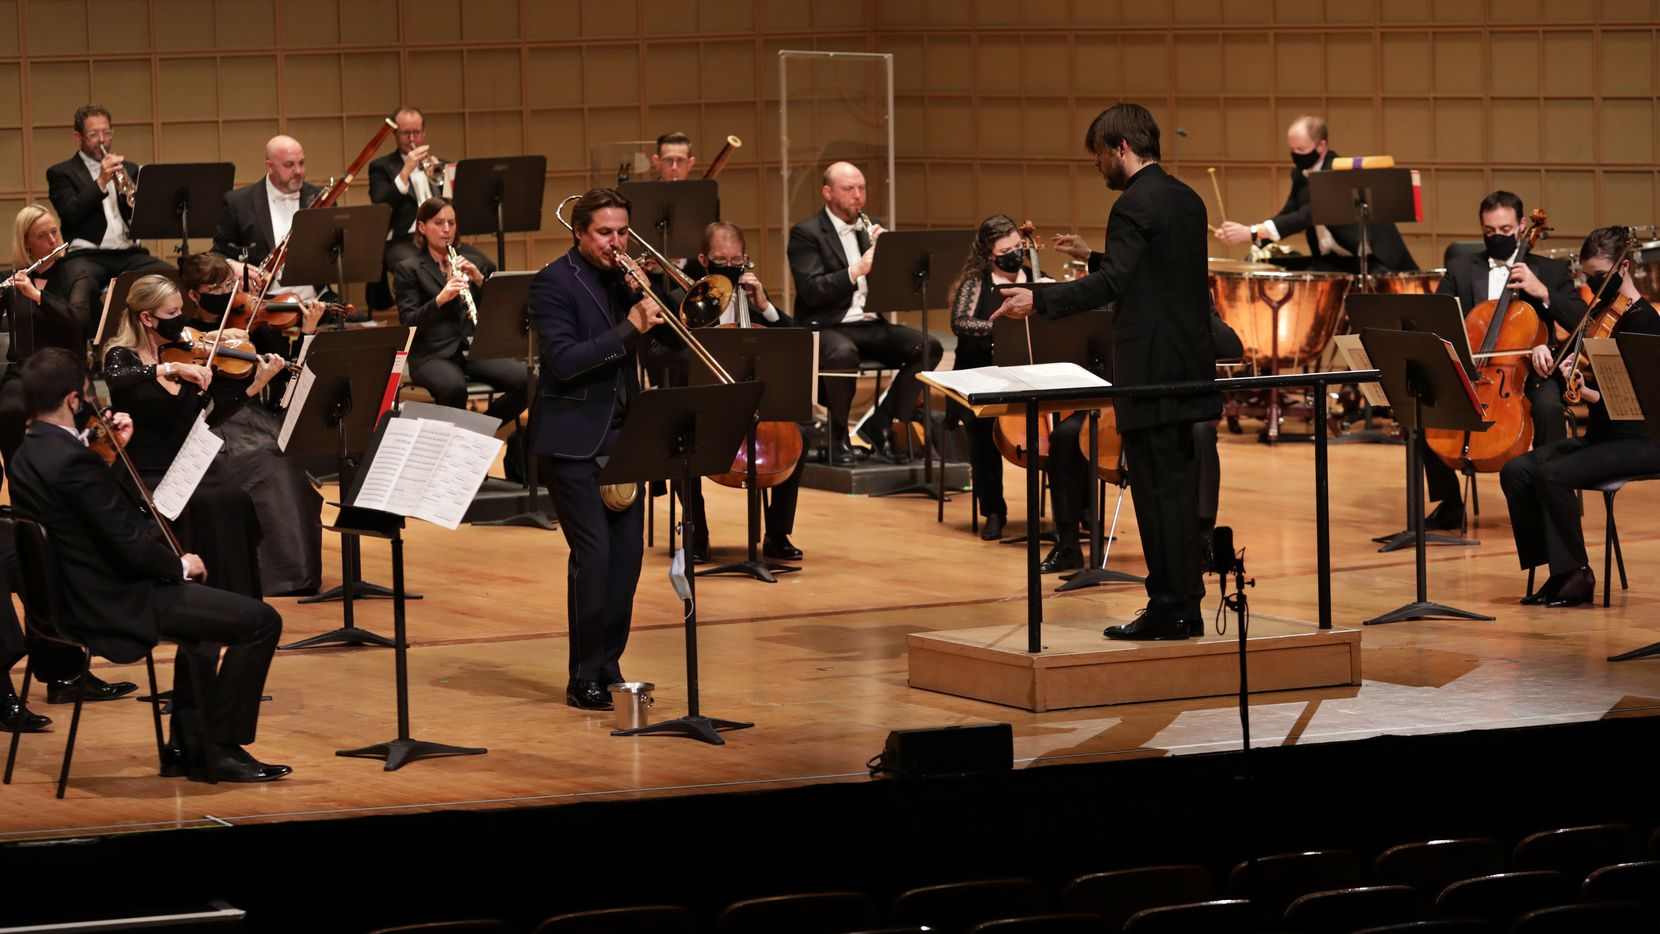 Trombonist Jörgen van Rijen plays the U.S. premiere of Bryce Dessner's Trombone Concerto with guest conductor Juraj  Valčuha and the Dallas Symphony Orchestra at the Meyerson Symphony Center in Dallas on Oct. 1, 2020. (Jason Janik/Special Contributor)